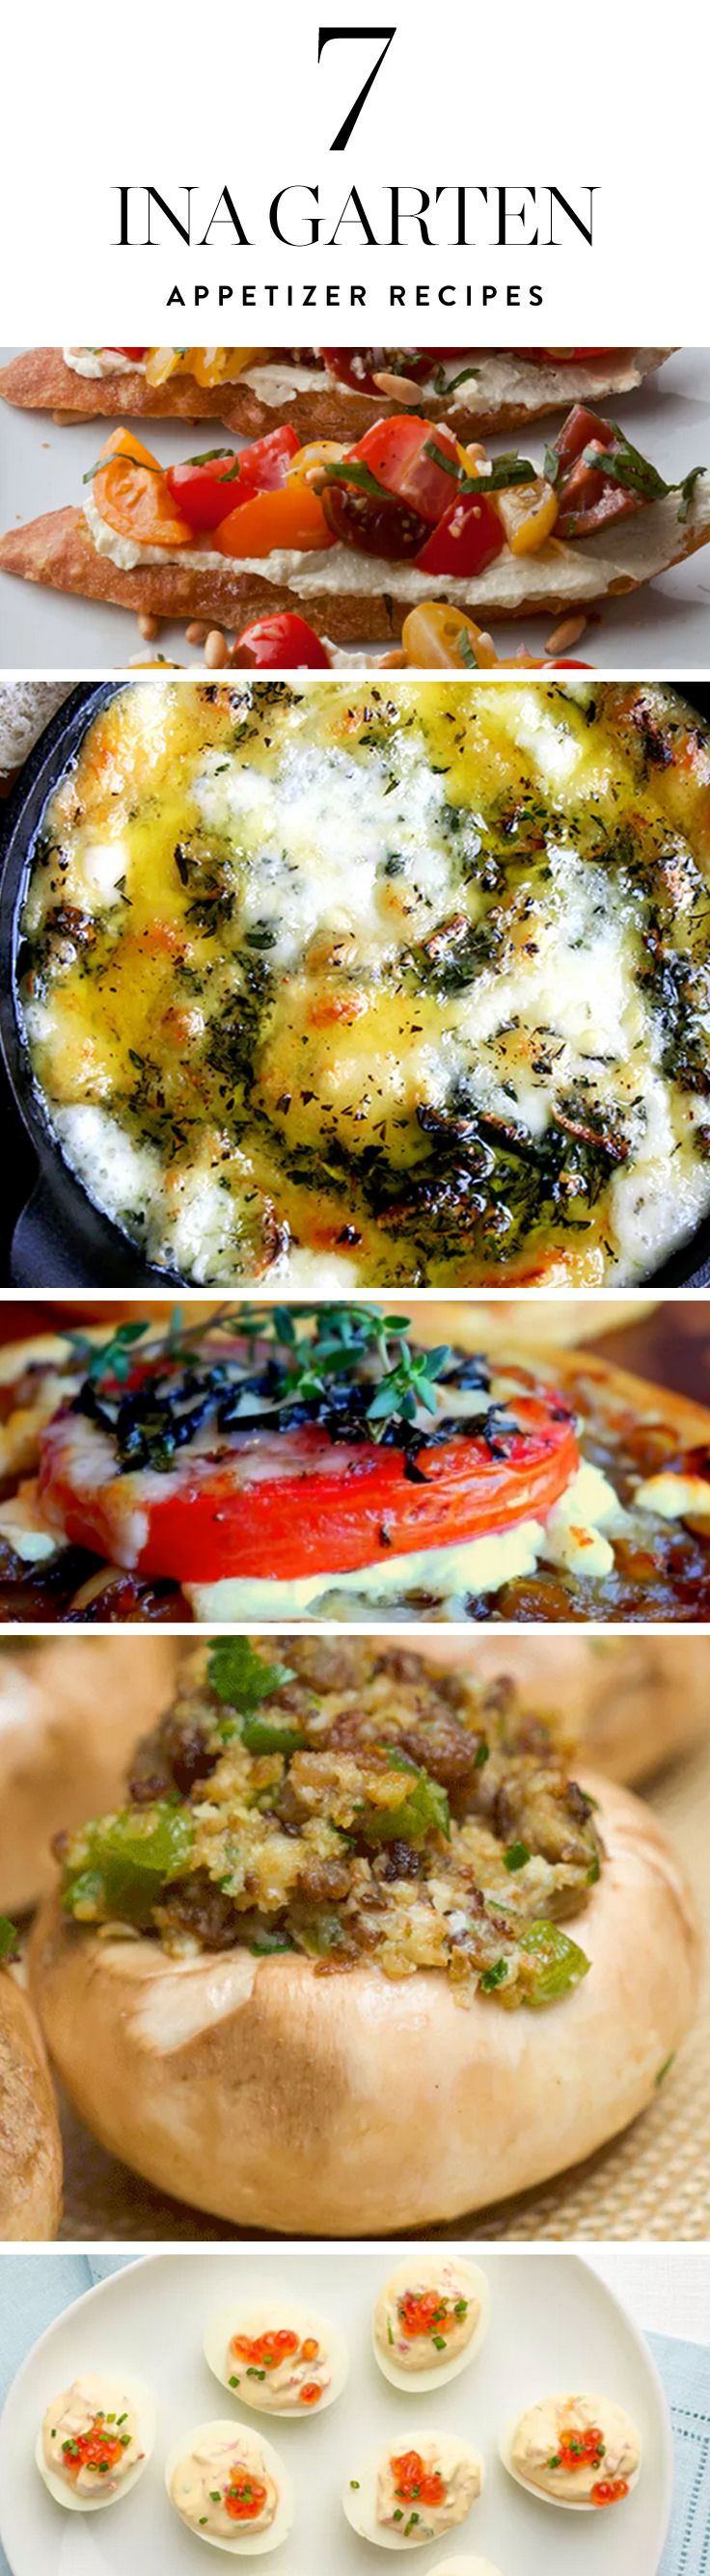 These Crowdpleasing Ina Garten Recipes Will Be A Hit! Try Them All For